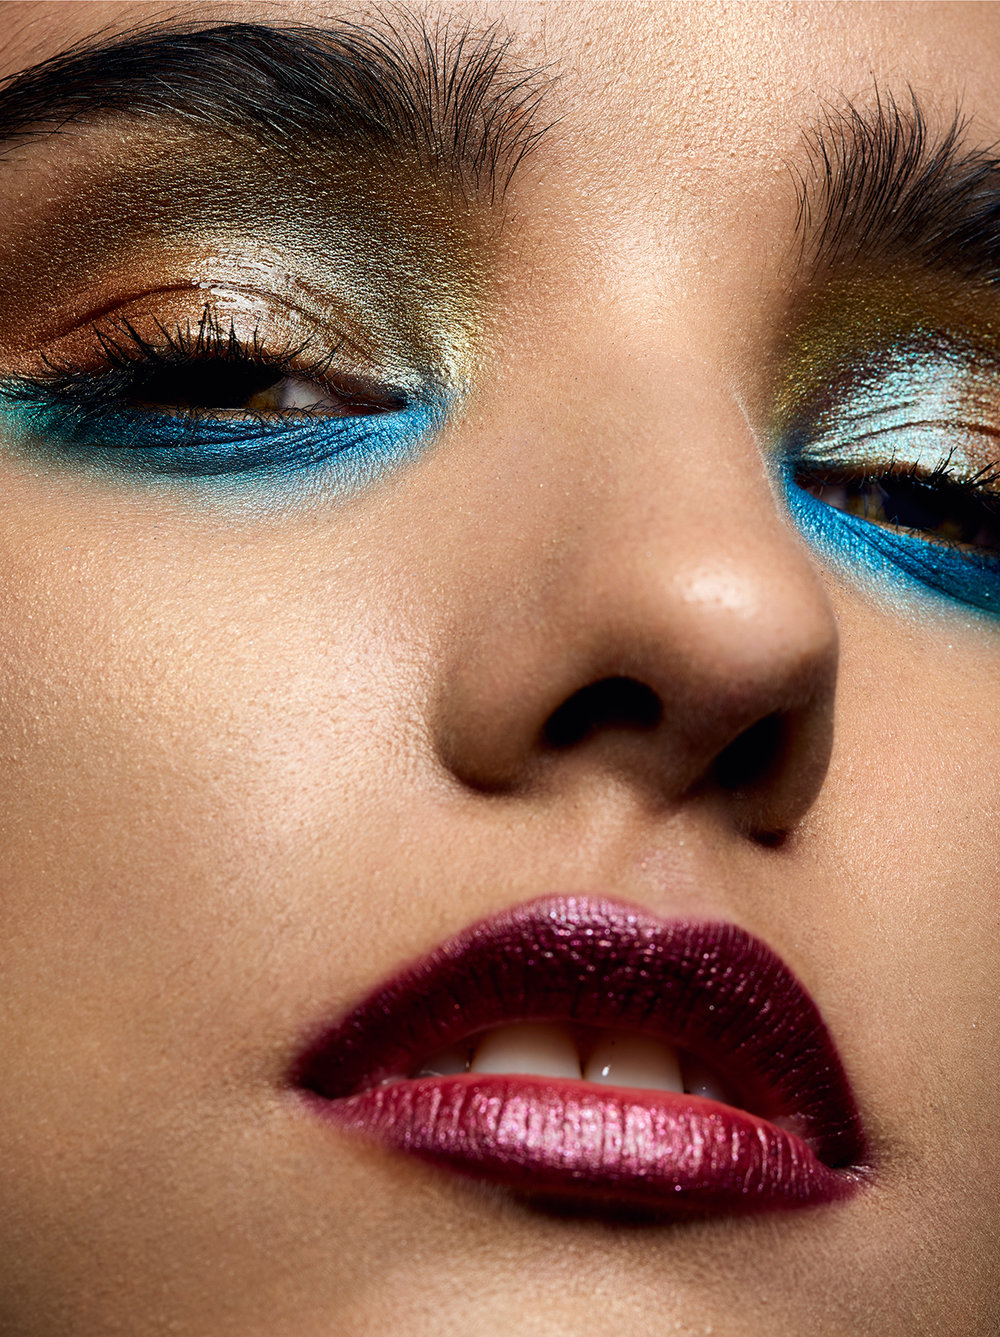 Beauty Shoot Editorial - KM4.jpg